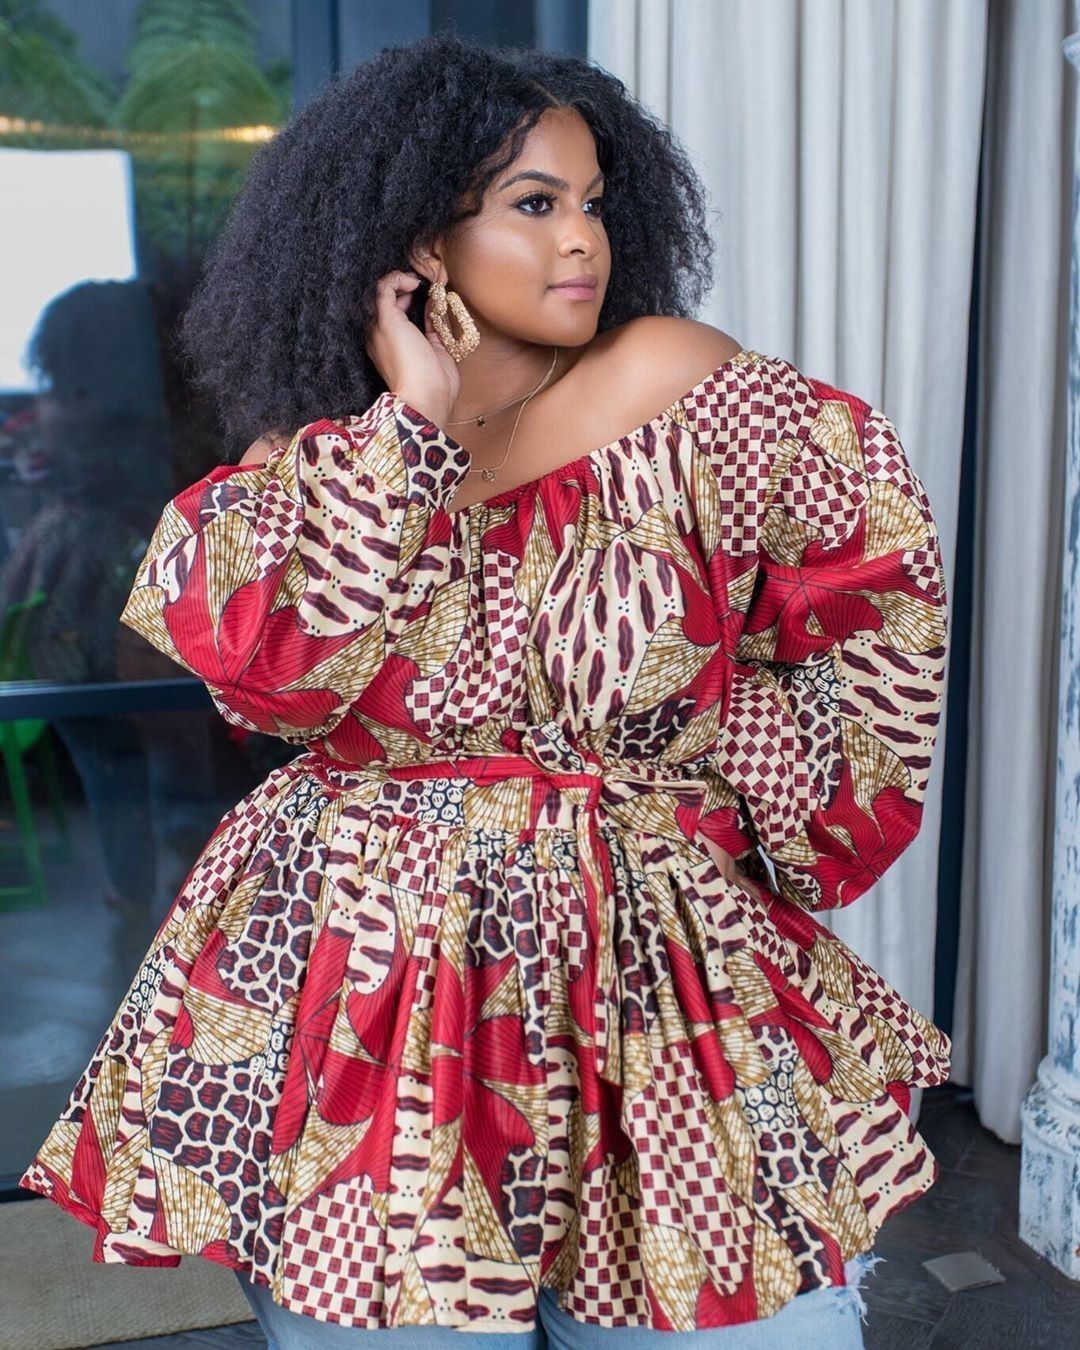 Oldie But Goodie The Reasons Why We Love These Wedding Pics African Print Tops African Print Fashion Dresses African Wear Dresses